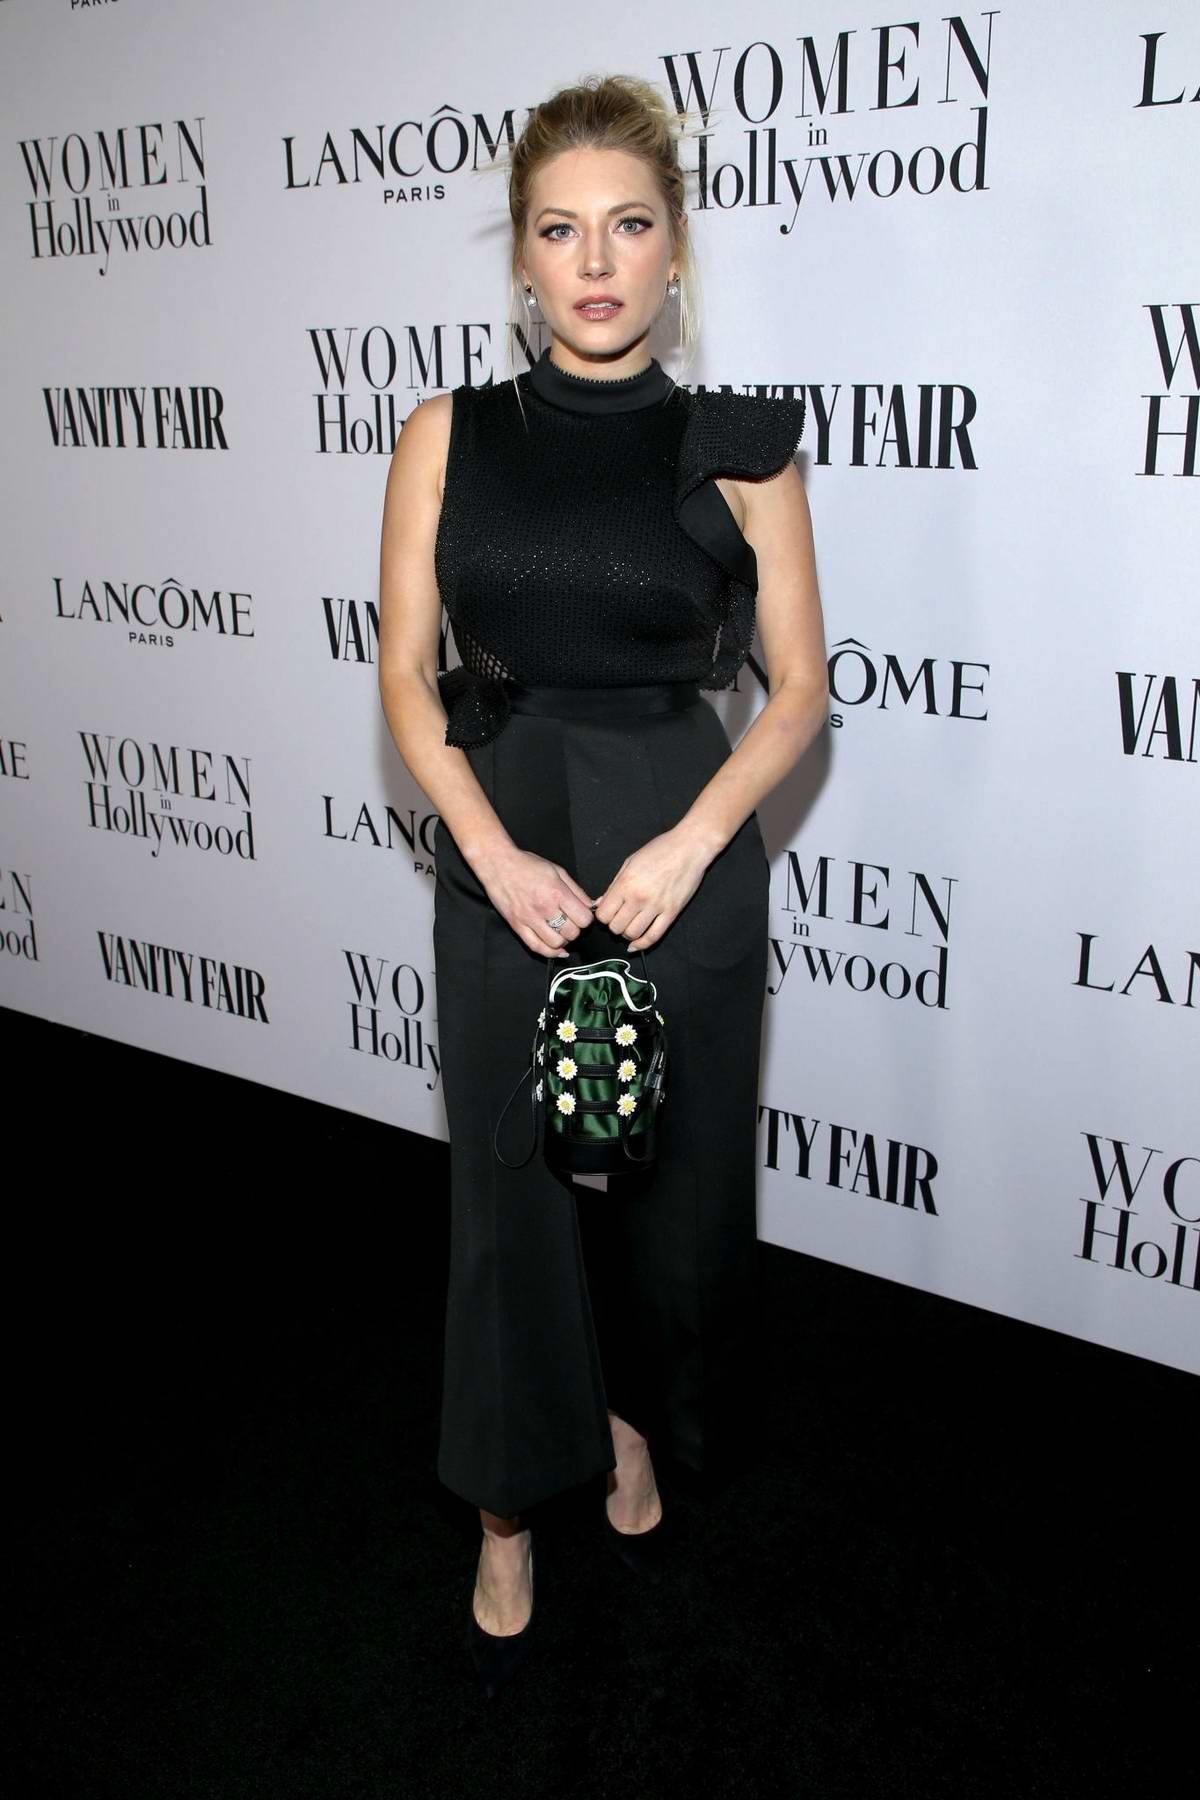 Katheryn Winnick attends the Vanity Fair and Lancome Women in Hollywood Celebration in West Hollywood, California